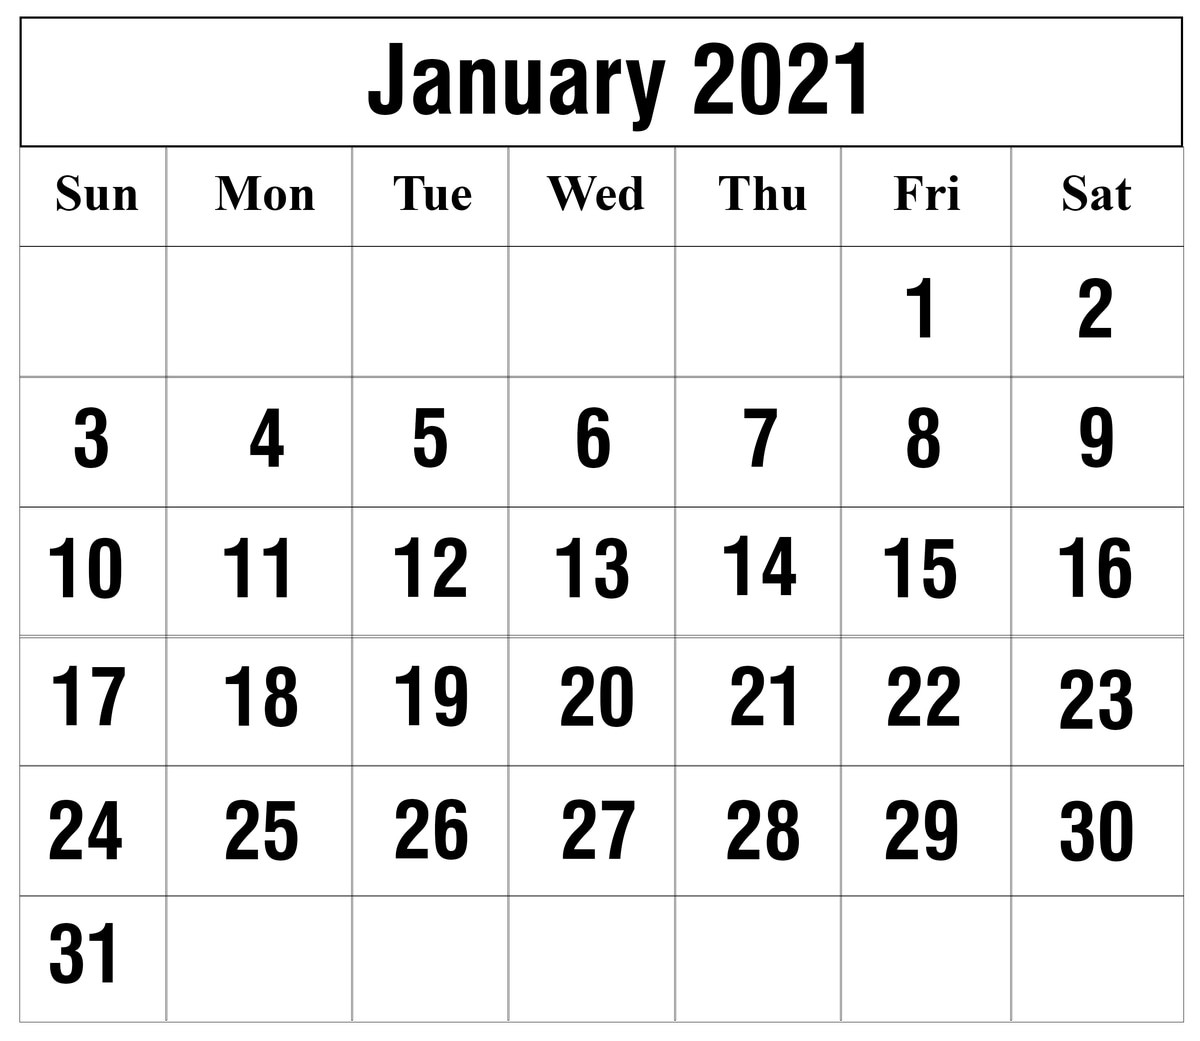 Free January 2021 Printable Calendar Template In Pdf, Excel  Julian Calendar 2021 Excel Spreadsheet